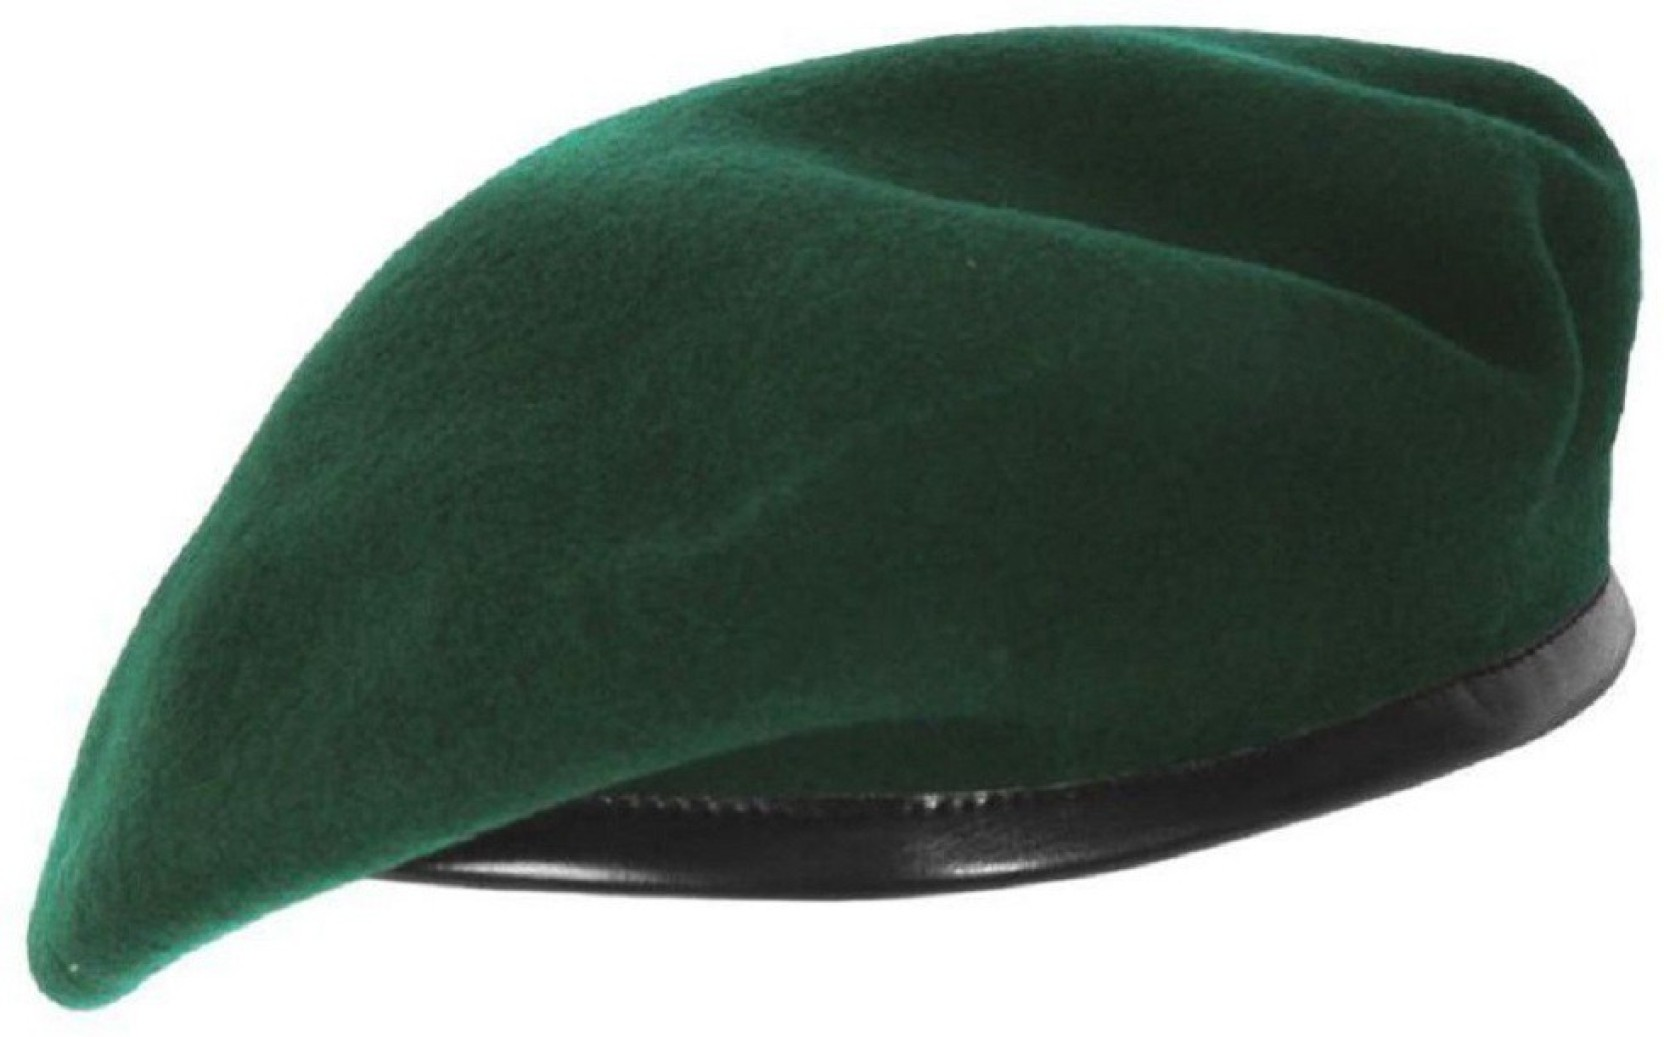 Indian Army Round Cap Images